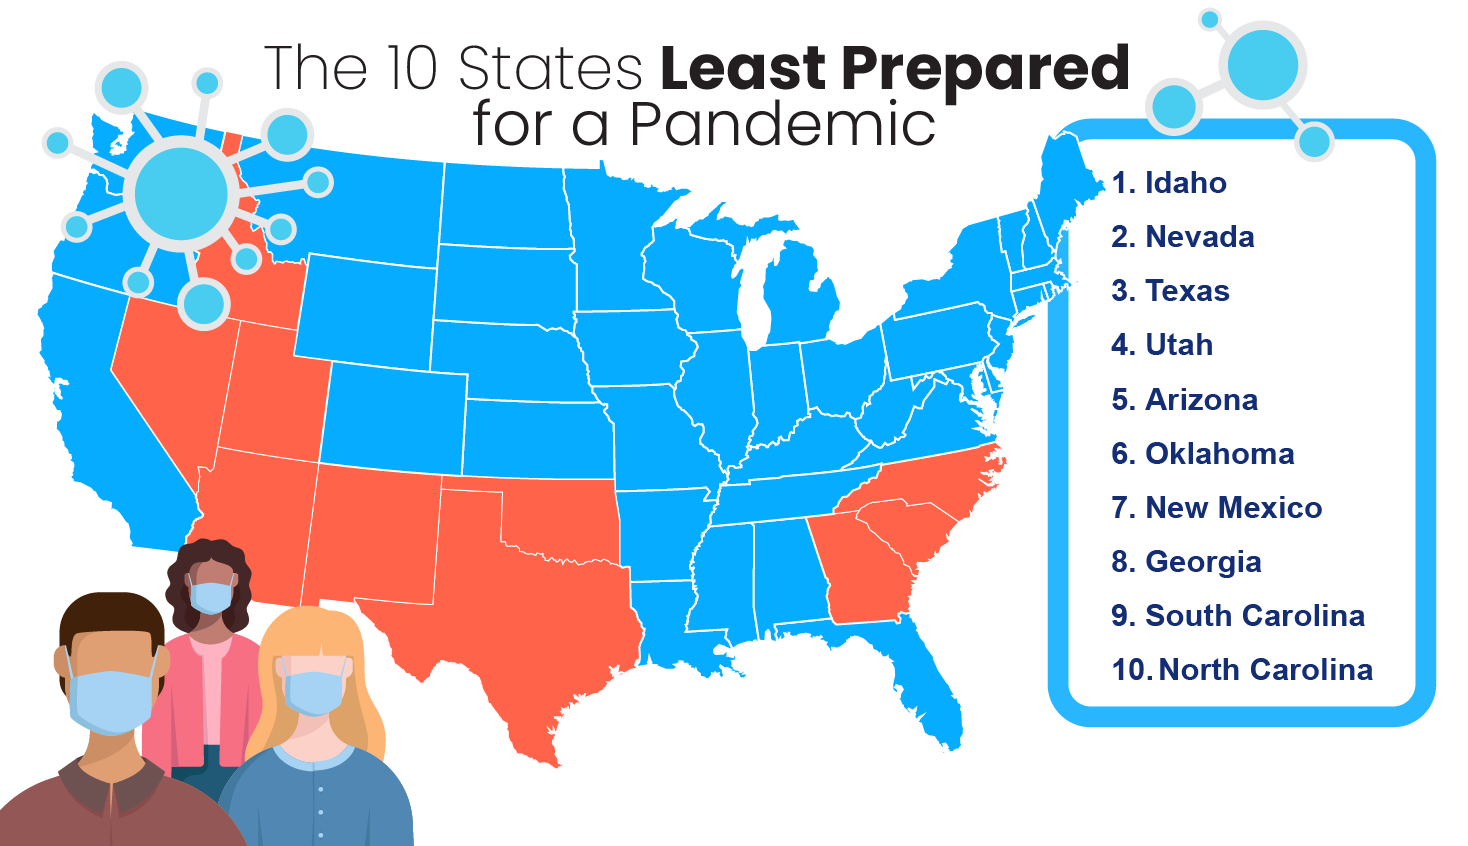 10 states least prepared to face a pandemic.